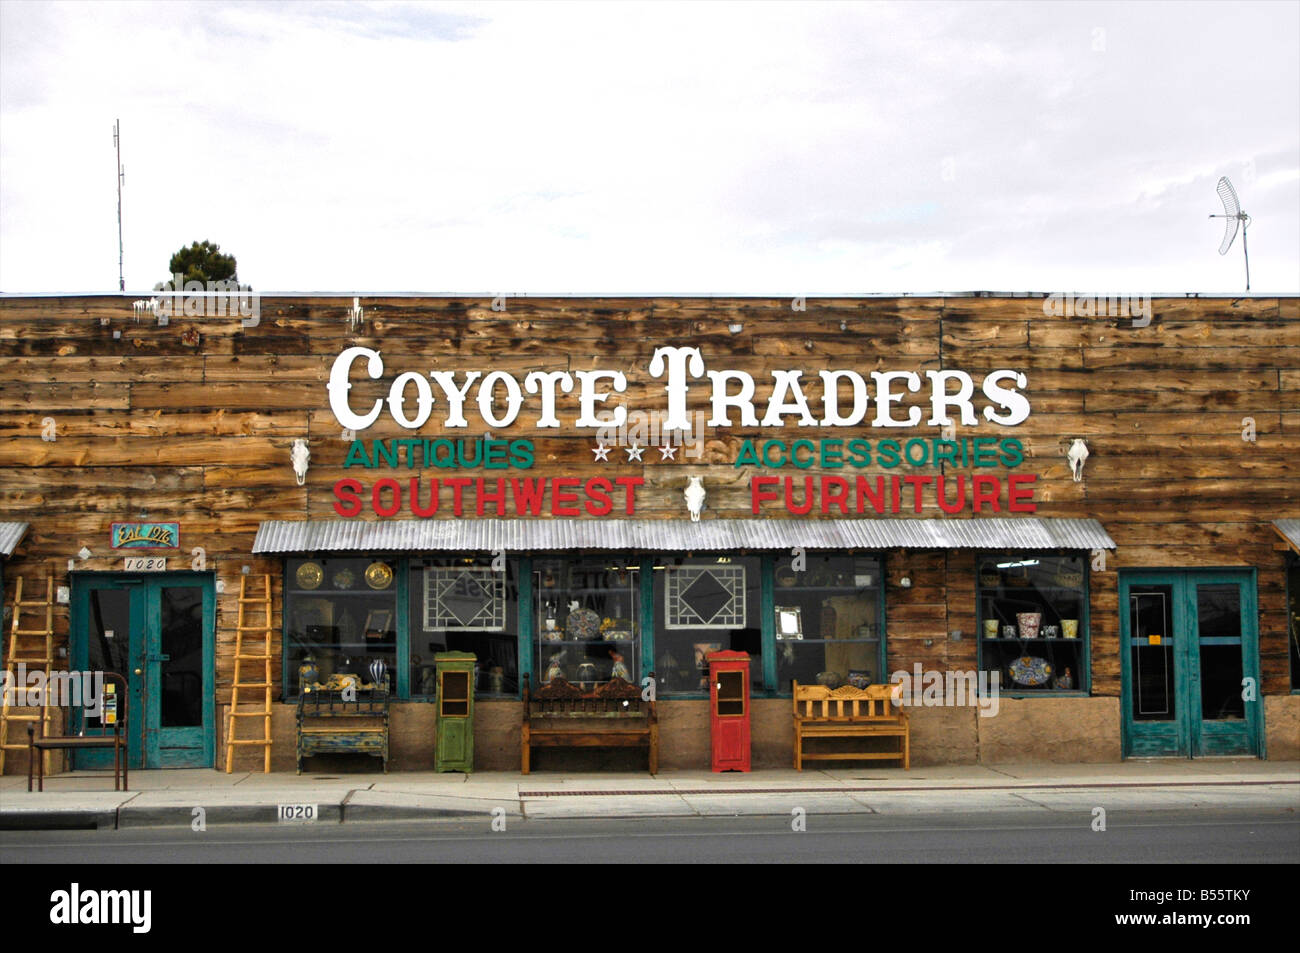 Beau Coyote Traders, Mexican Styled Furniture Store In Las Cruces, New Mexico